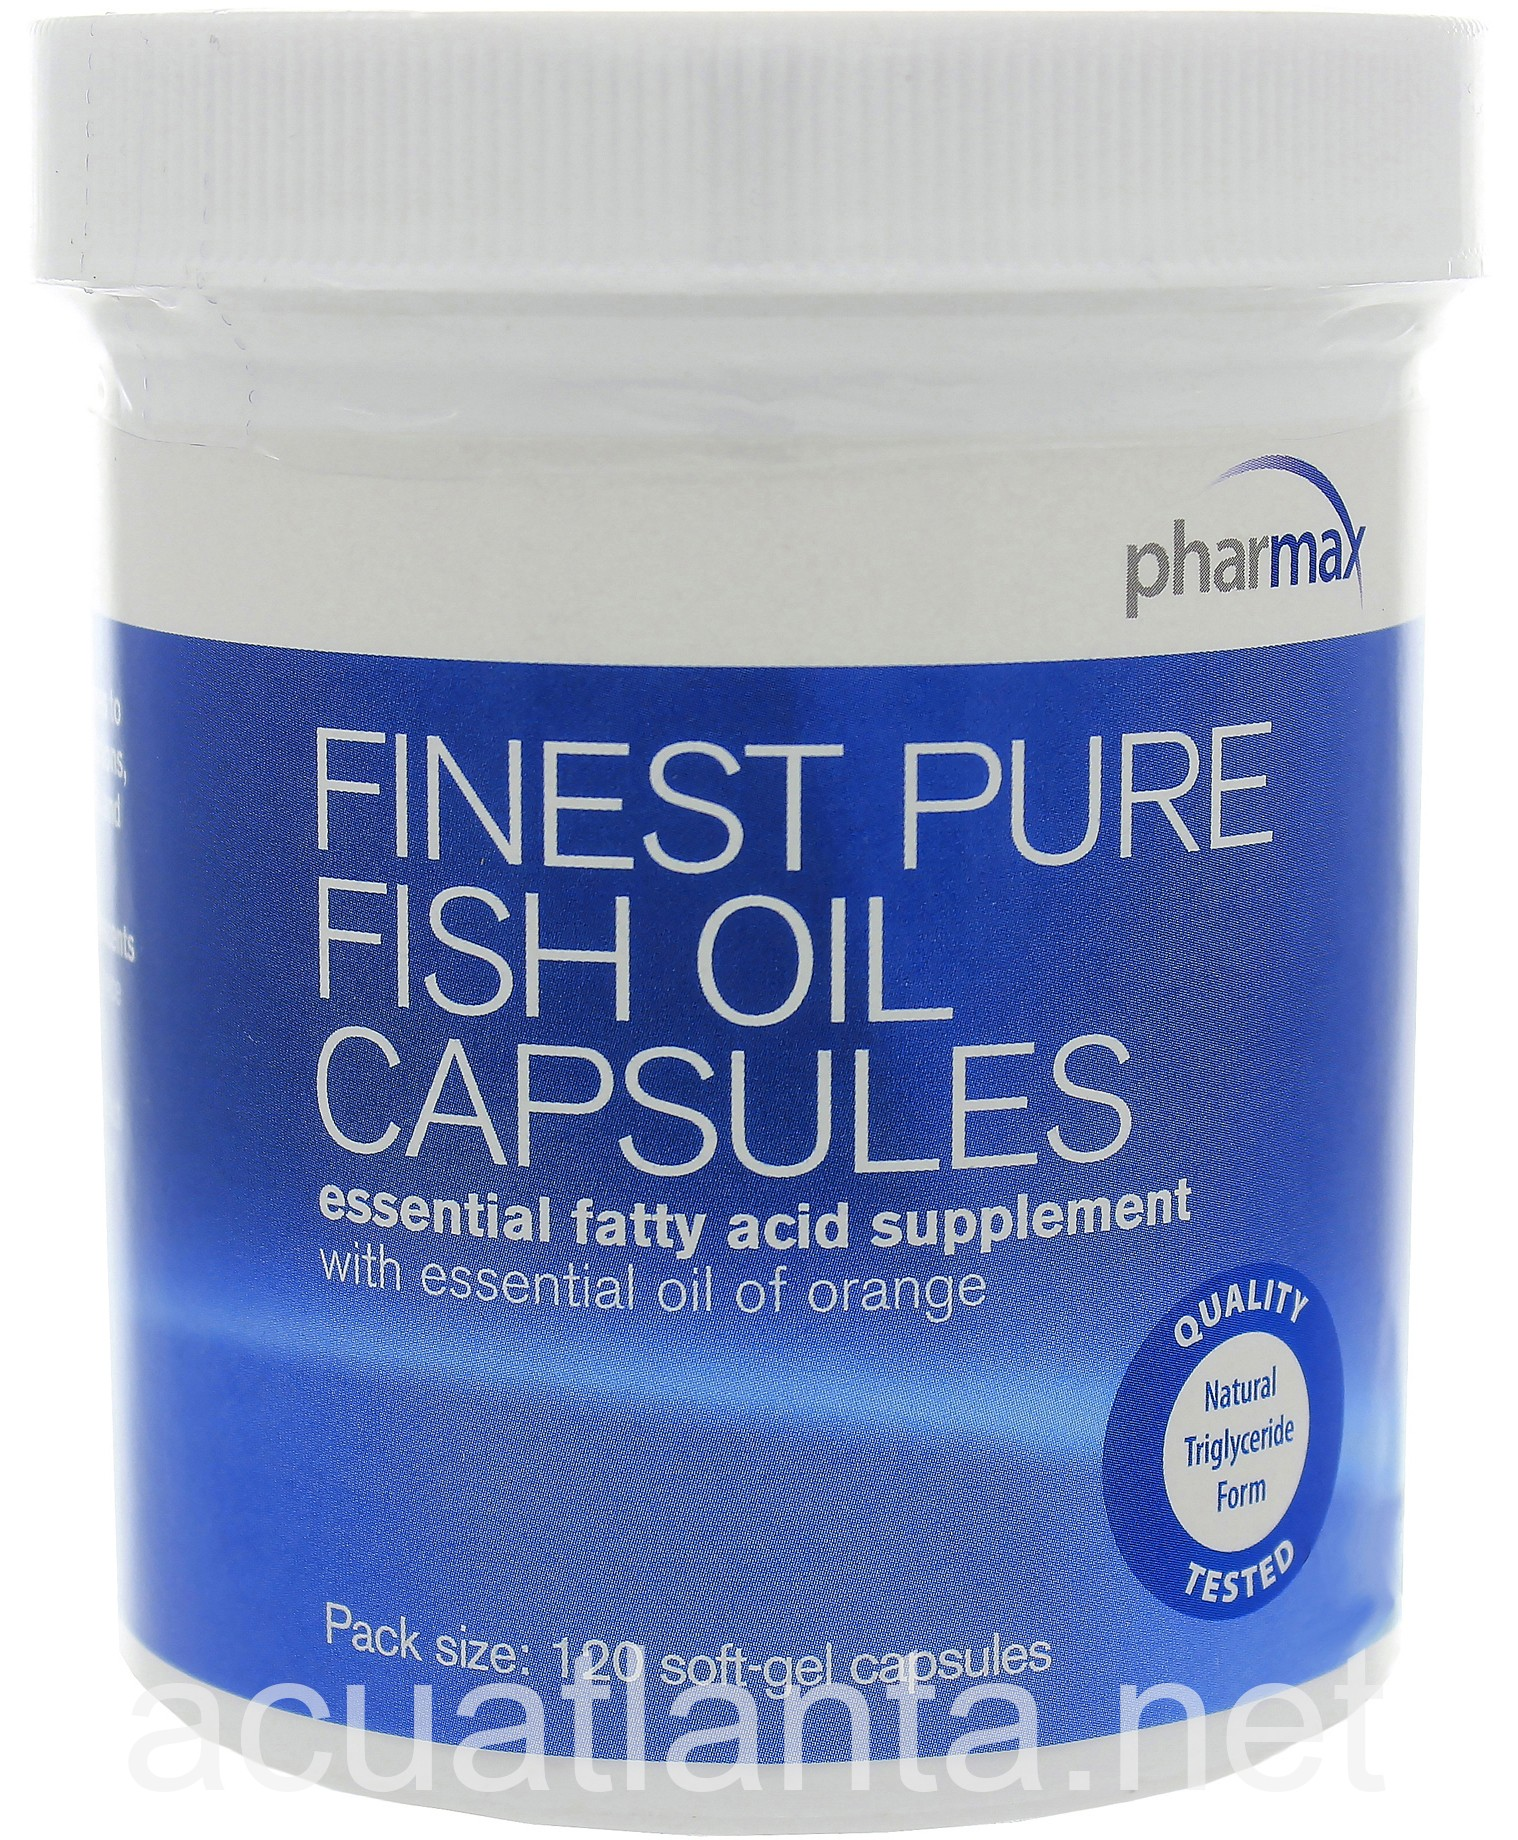 Finest pure fish oil capsules by pharmax finest pure fish for What are fish oil pills good for